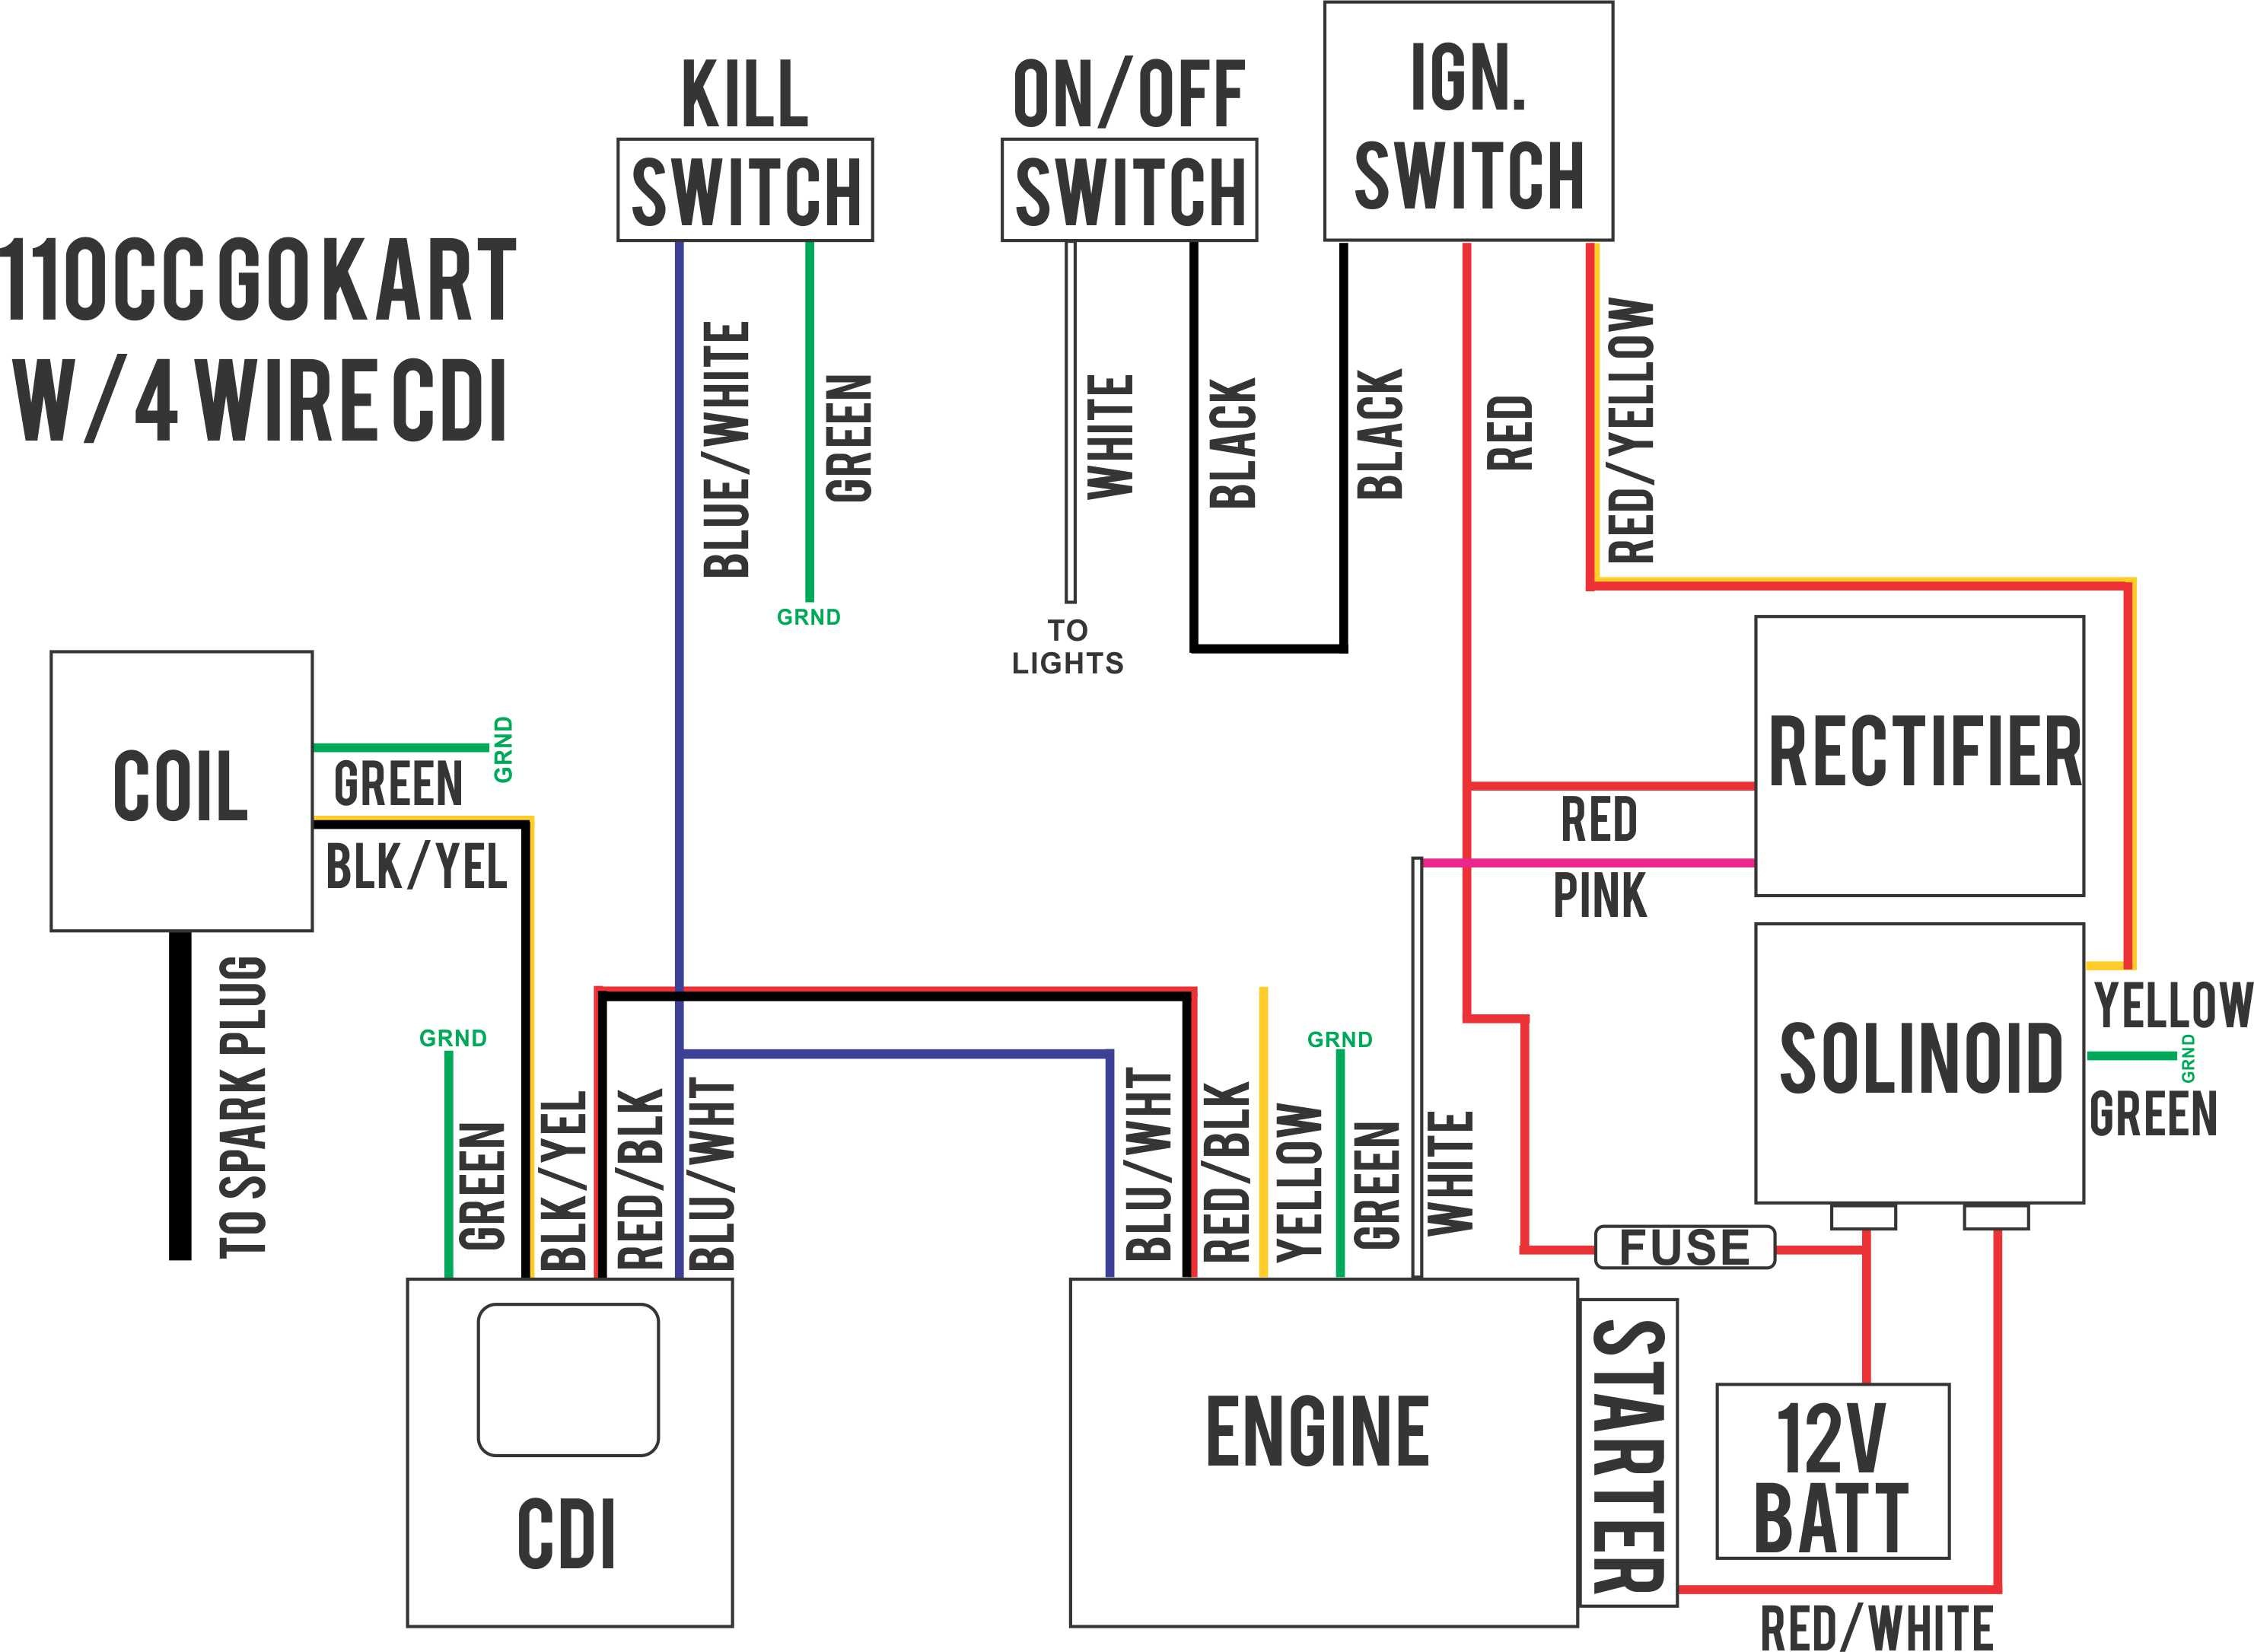 2 Stroke Scooter Wiring Diagram Schematic Opinions About Mini Cooper S R56 Fuse Box X2 Pocket Bike And Schematics Rh Rivcas Org Engine 150cc